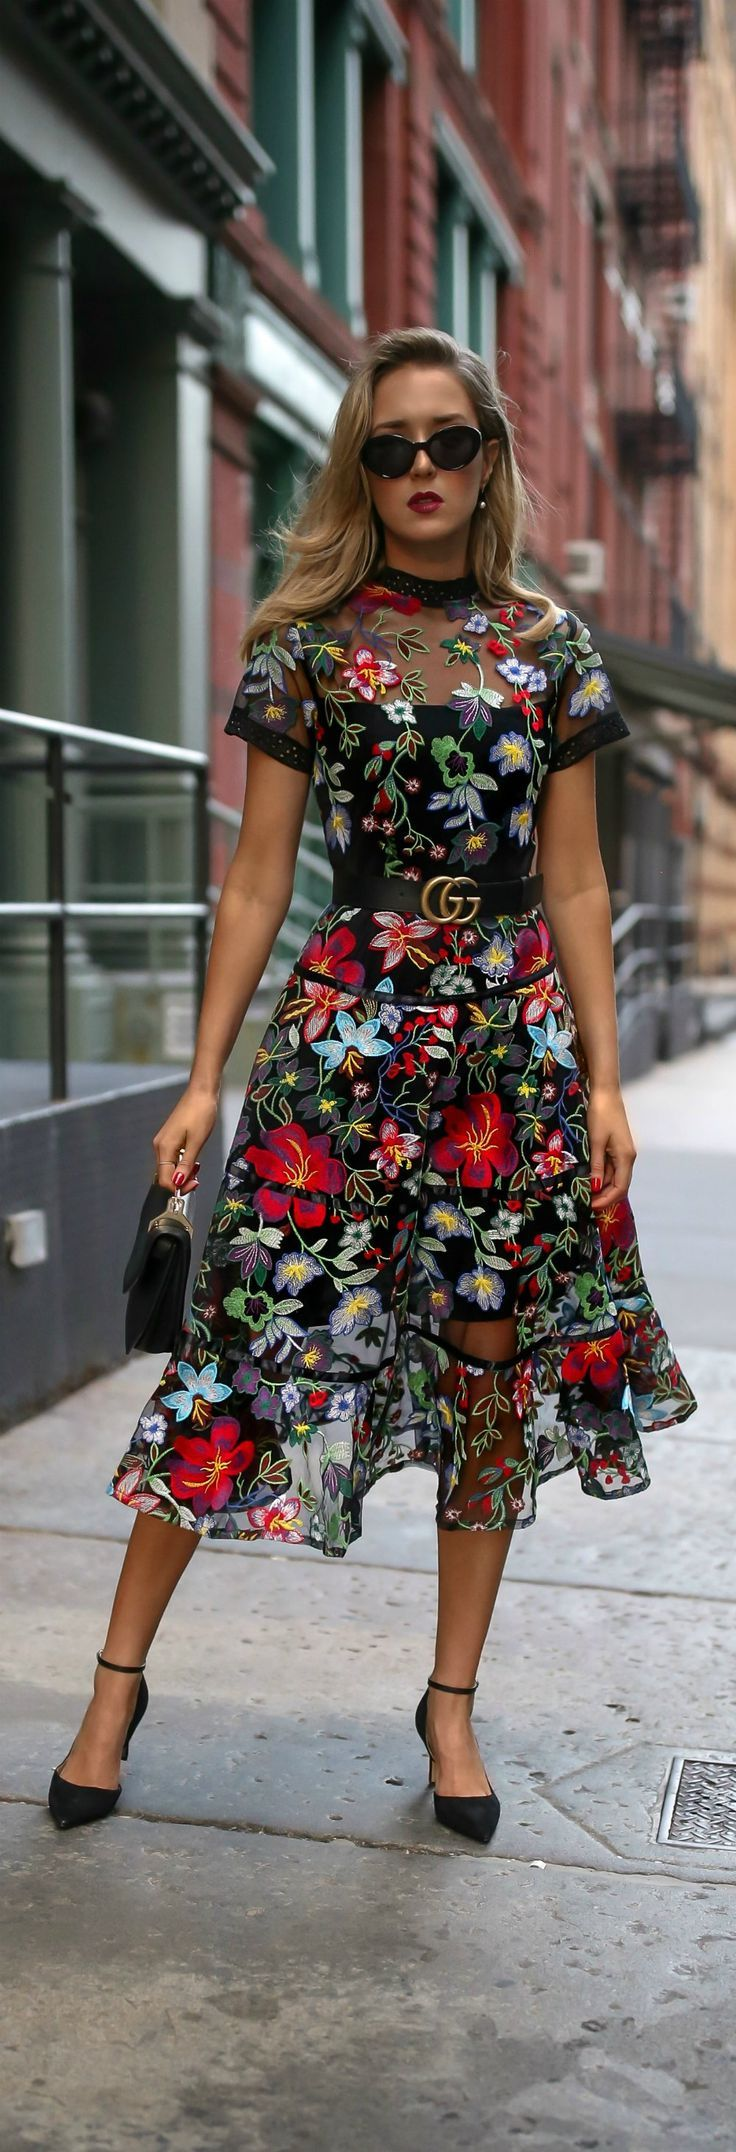 TREND MEMO: Fall Florals //  Floral print embroidered midi dress, leather waist belt, ankle strap pumps, mini shoulder bag, cat eye sunglasses, pearl drop earrings {Anthropologie, Gucci, Sam Edelman, Marc Jacobs, fall winter 2017 trends, fall trends, fashion trends, classic style}